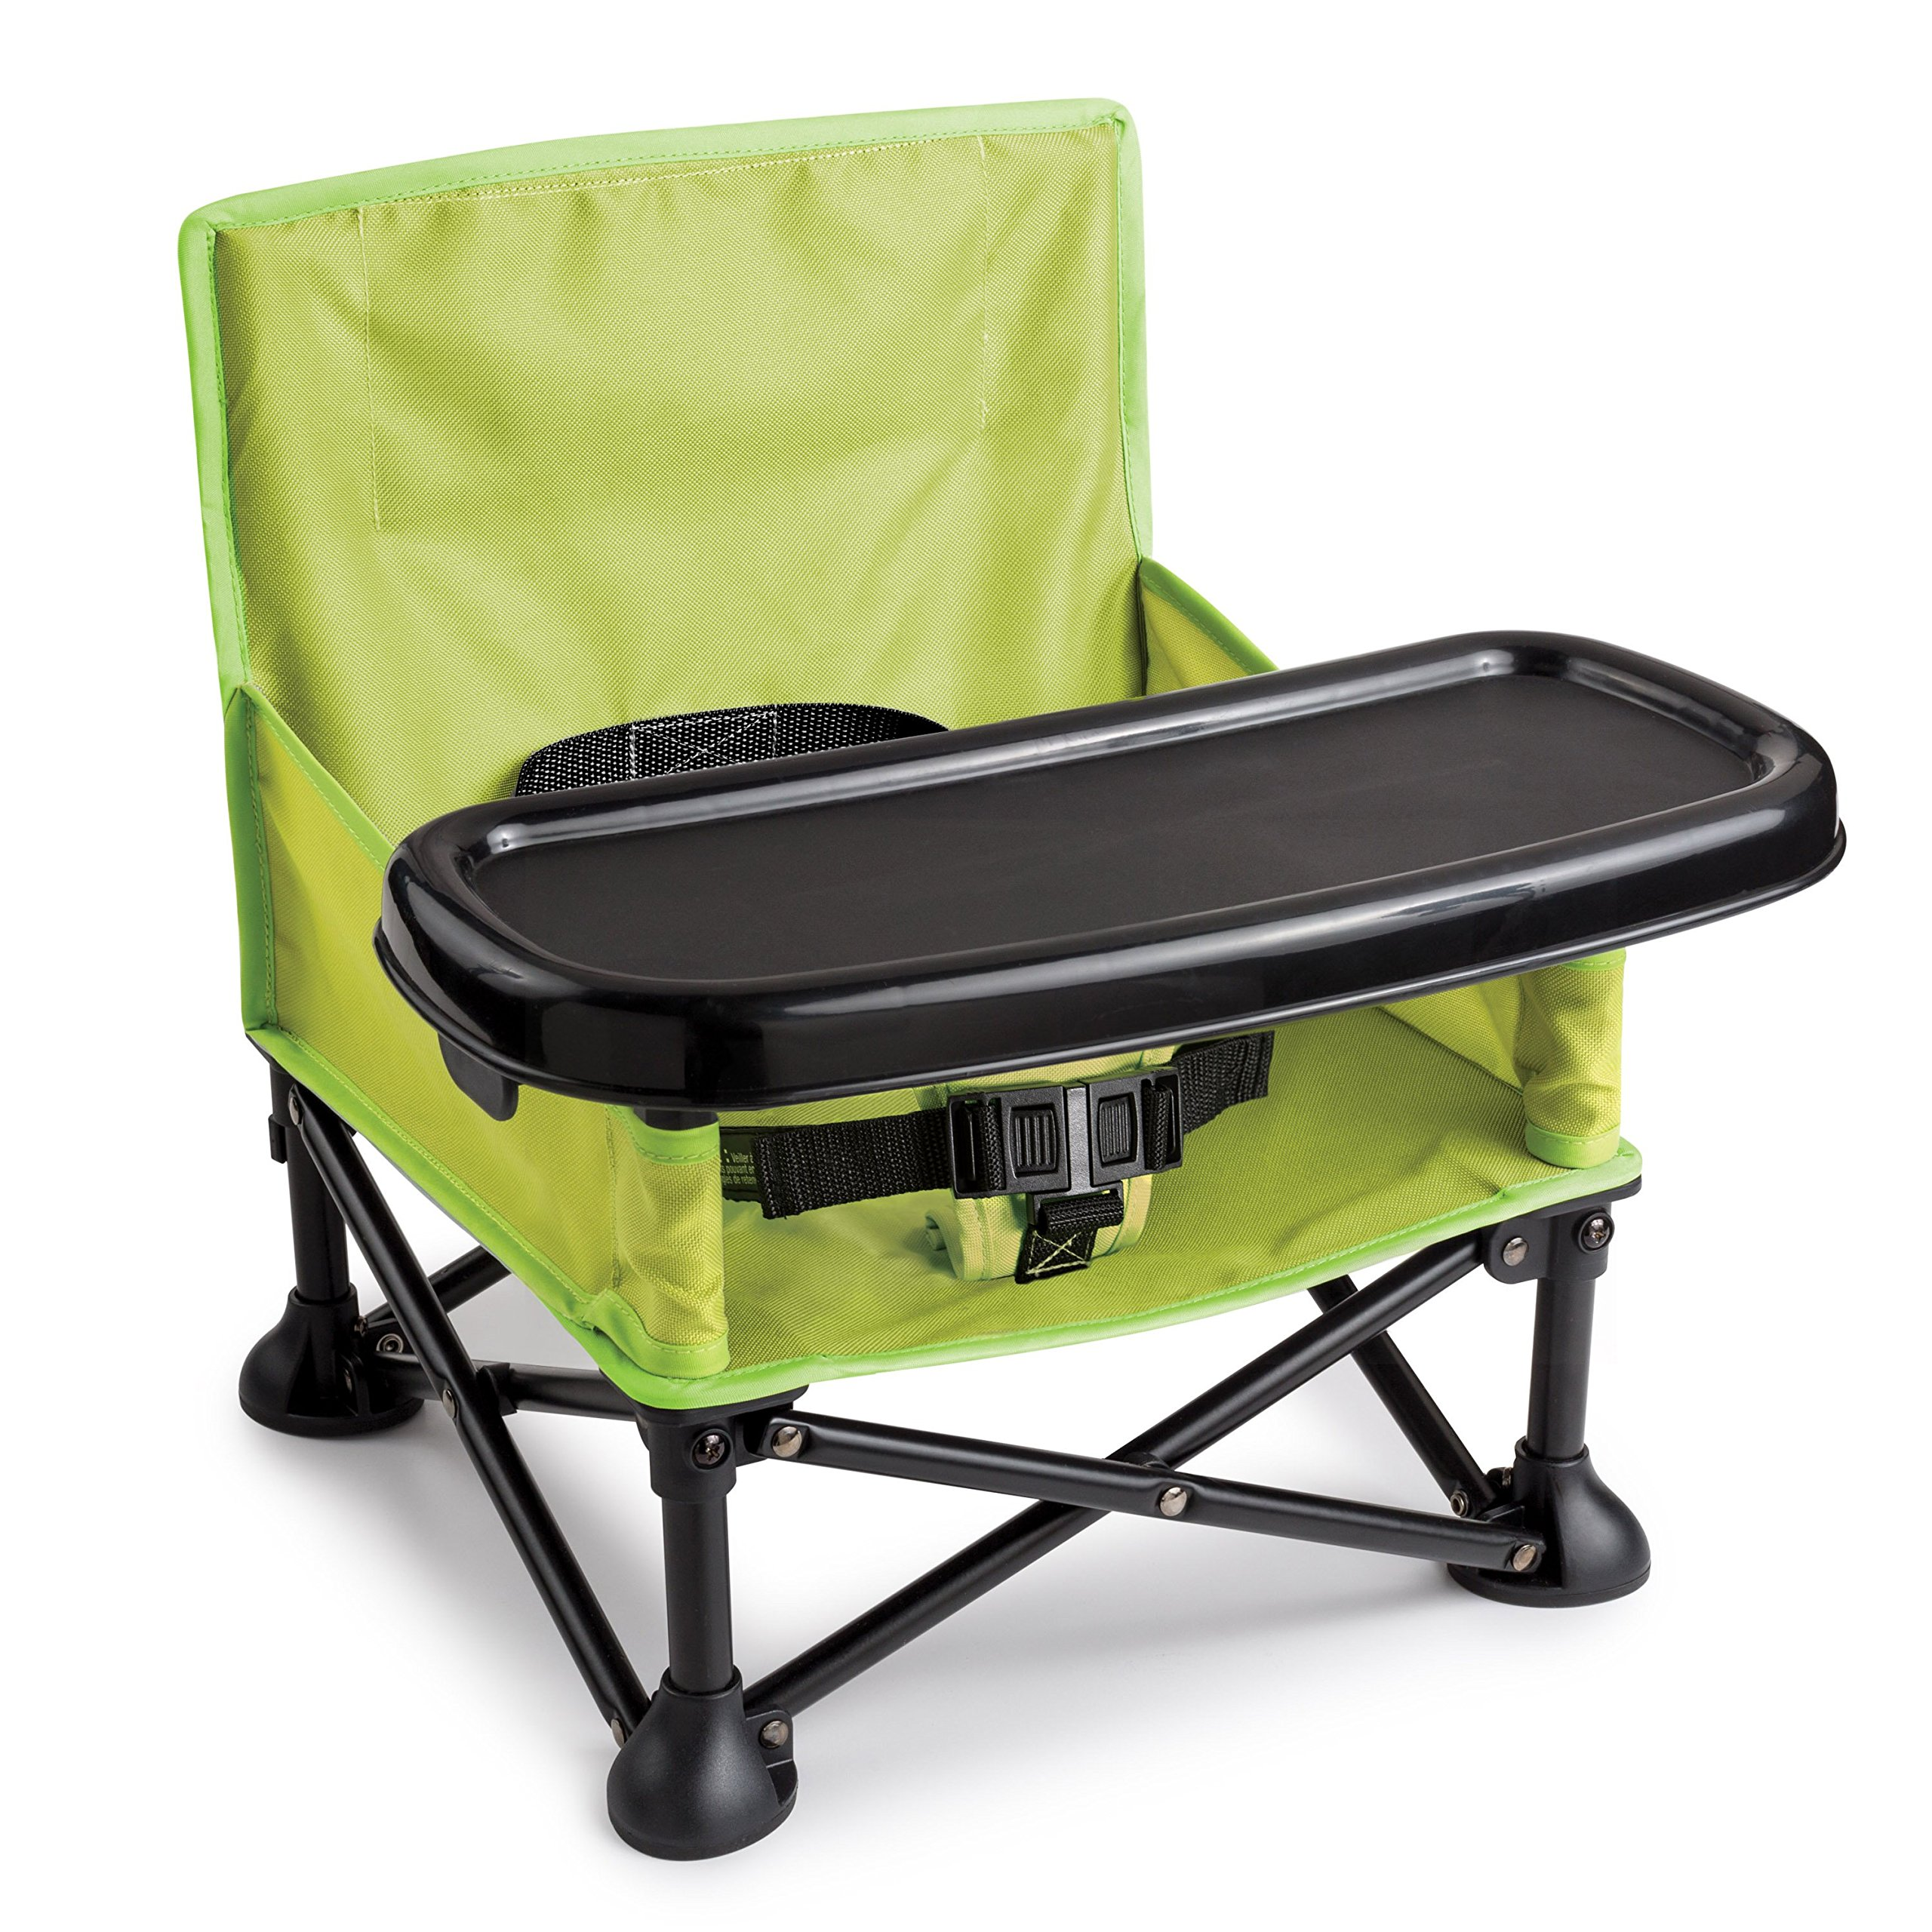 New Camping Booster Portable Infant Seat, Baby Toddler